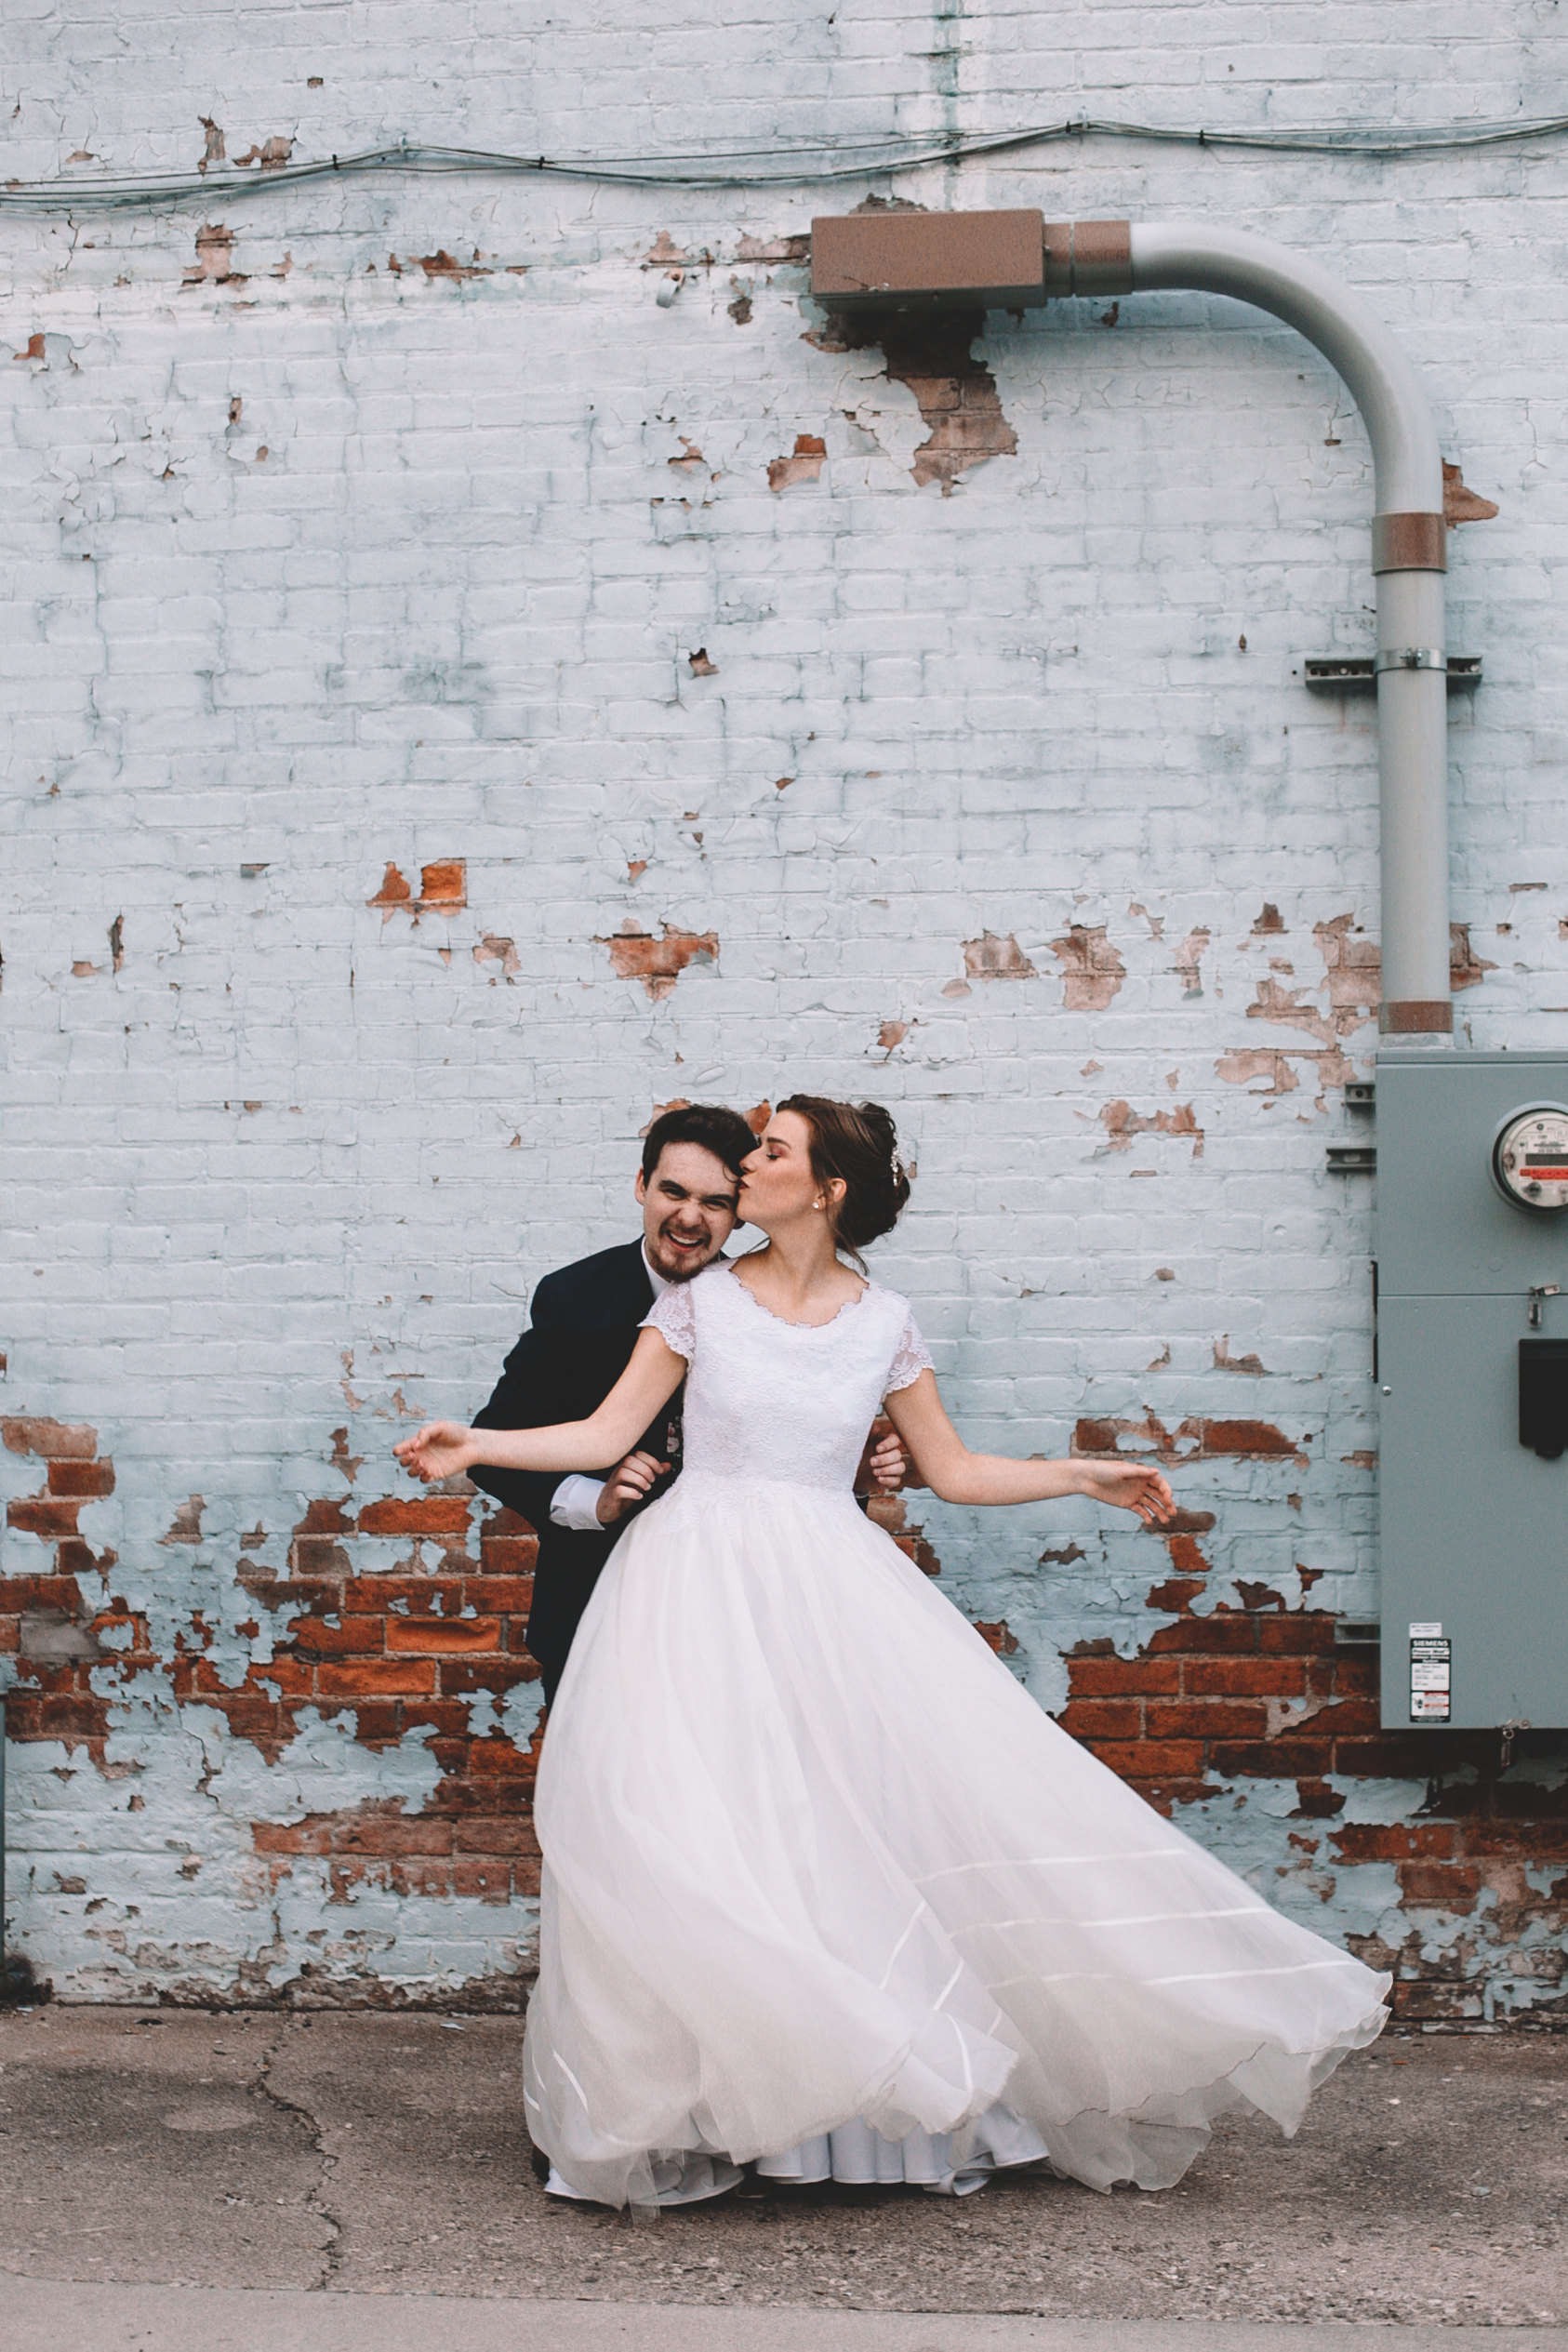 Urban Distressed Brick Wall Bridal Portraits Again We Say Rejoice Photography (9 of 18).jpg